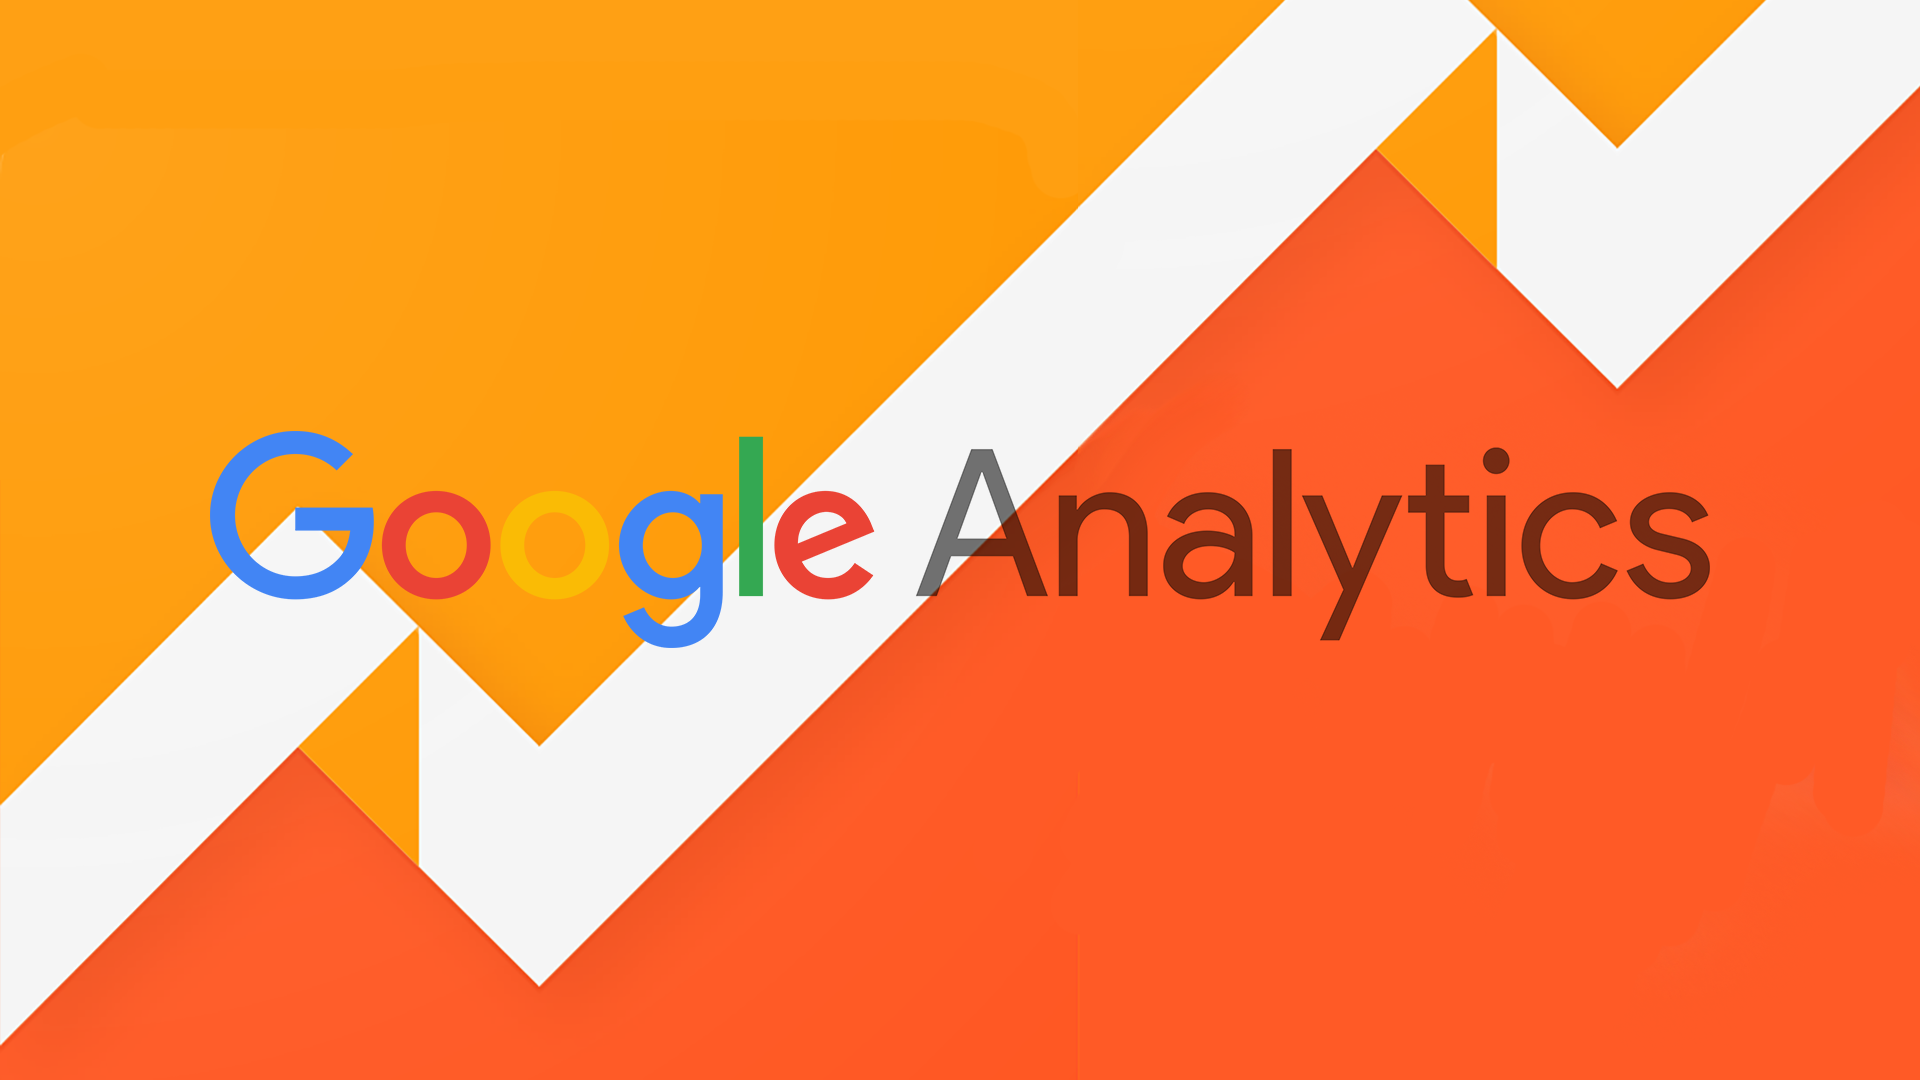 Google Analytics And Webmaster Tools (Now Search Console) With Sitemap